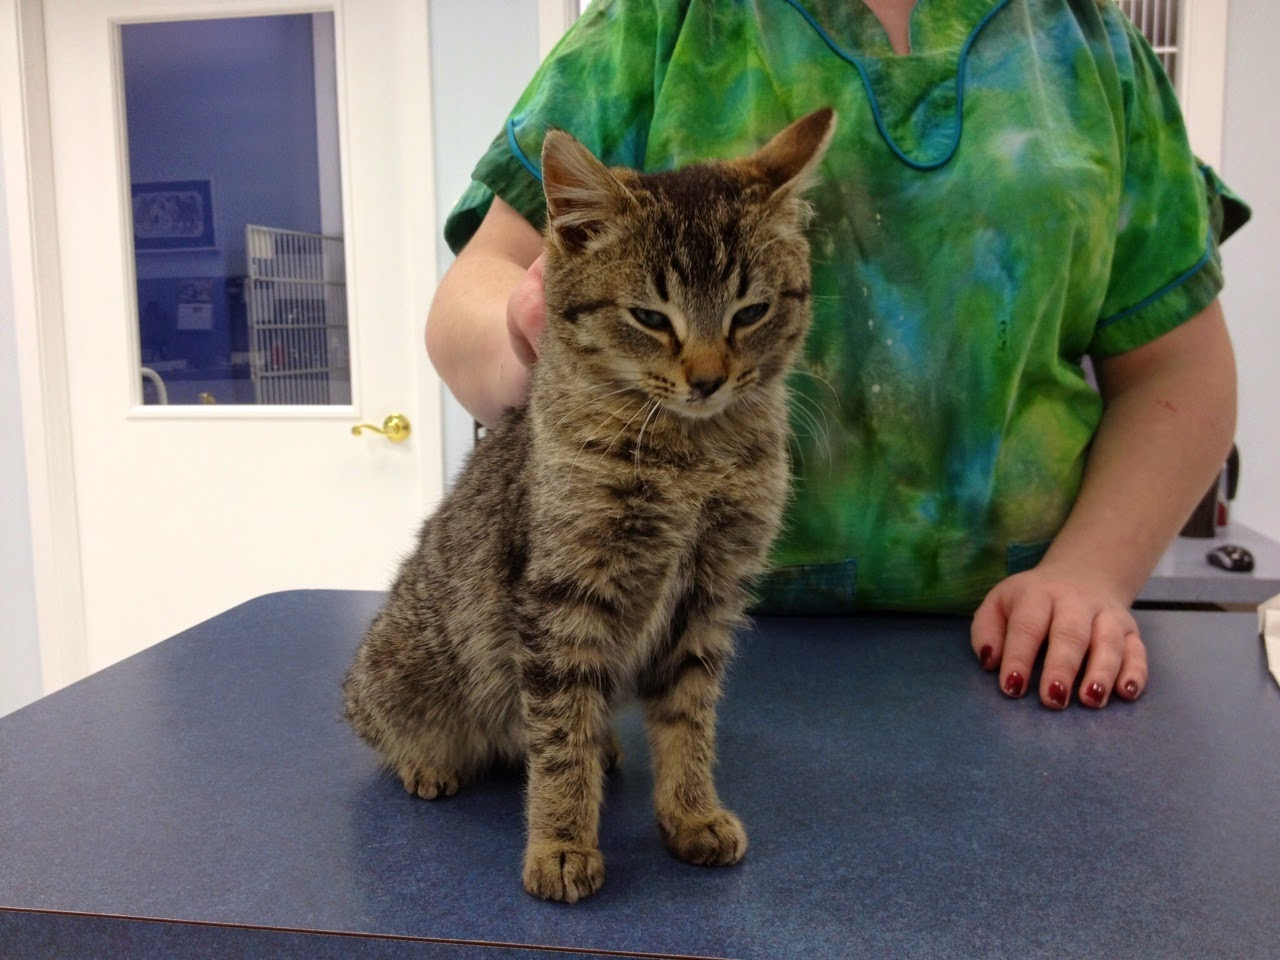 Disease distemper in cats: photos, incubation period, effects 24